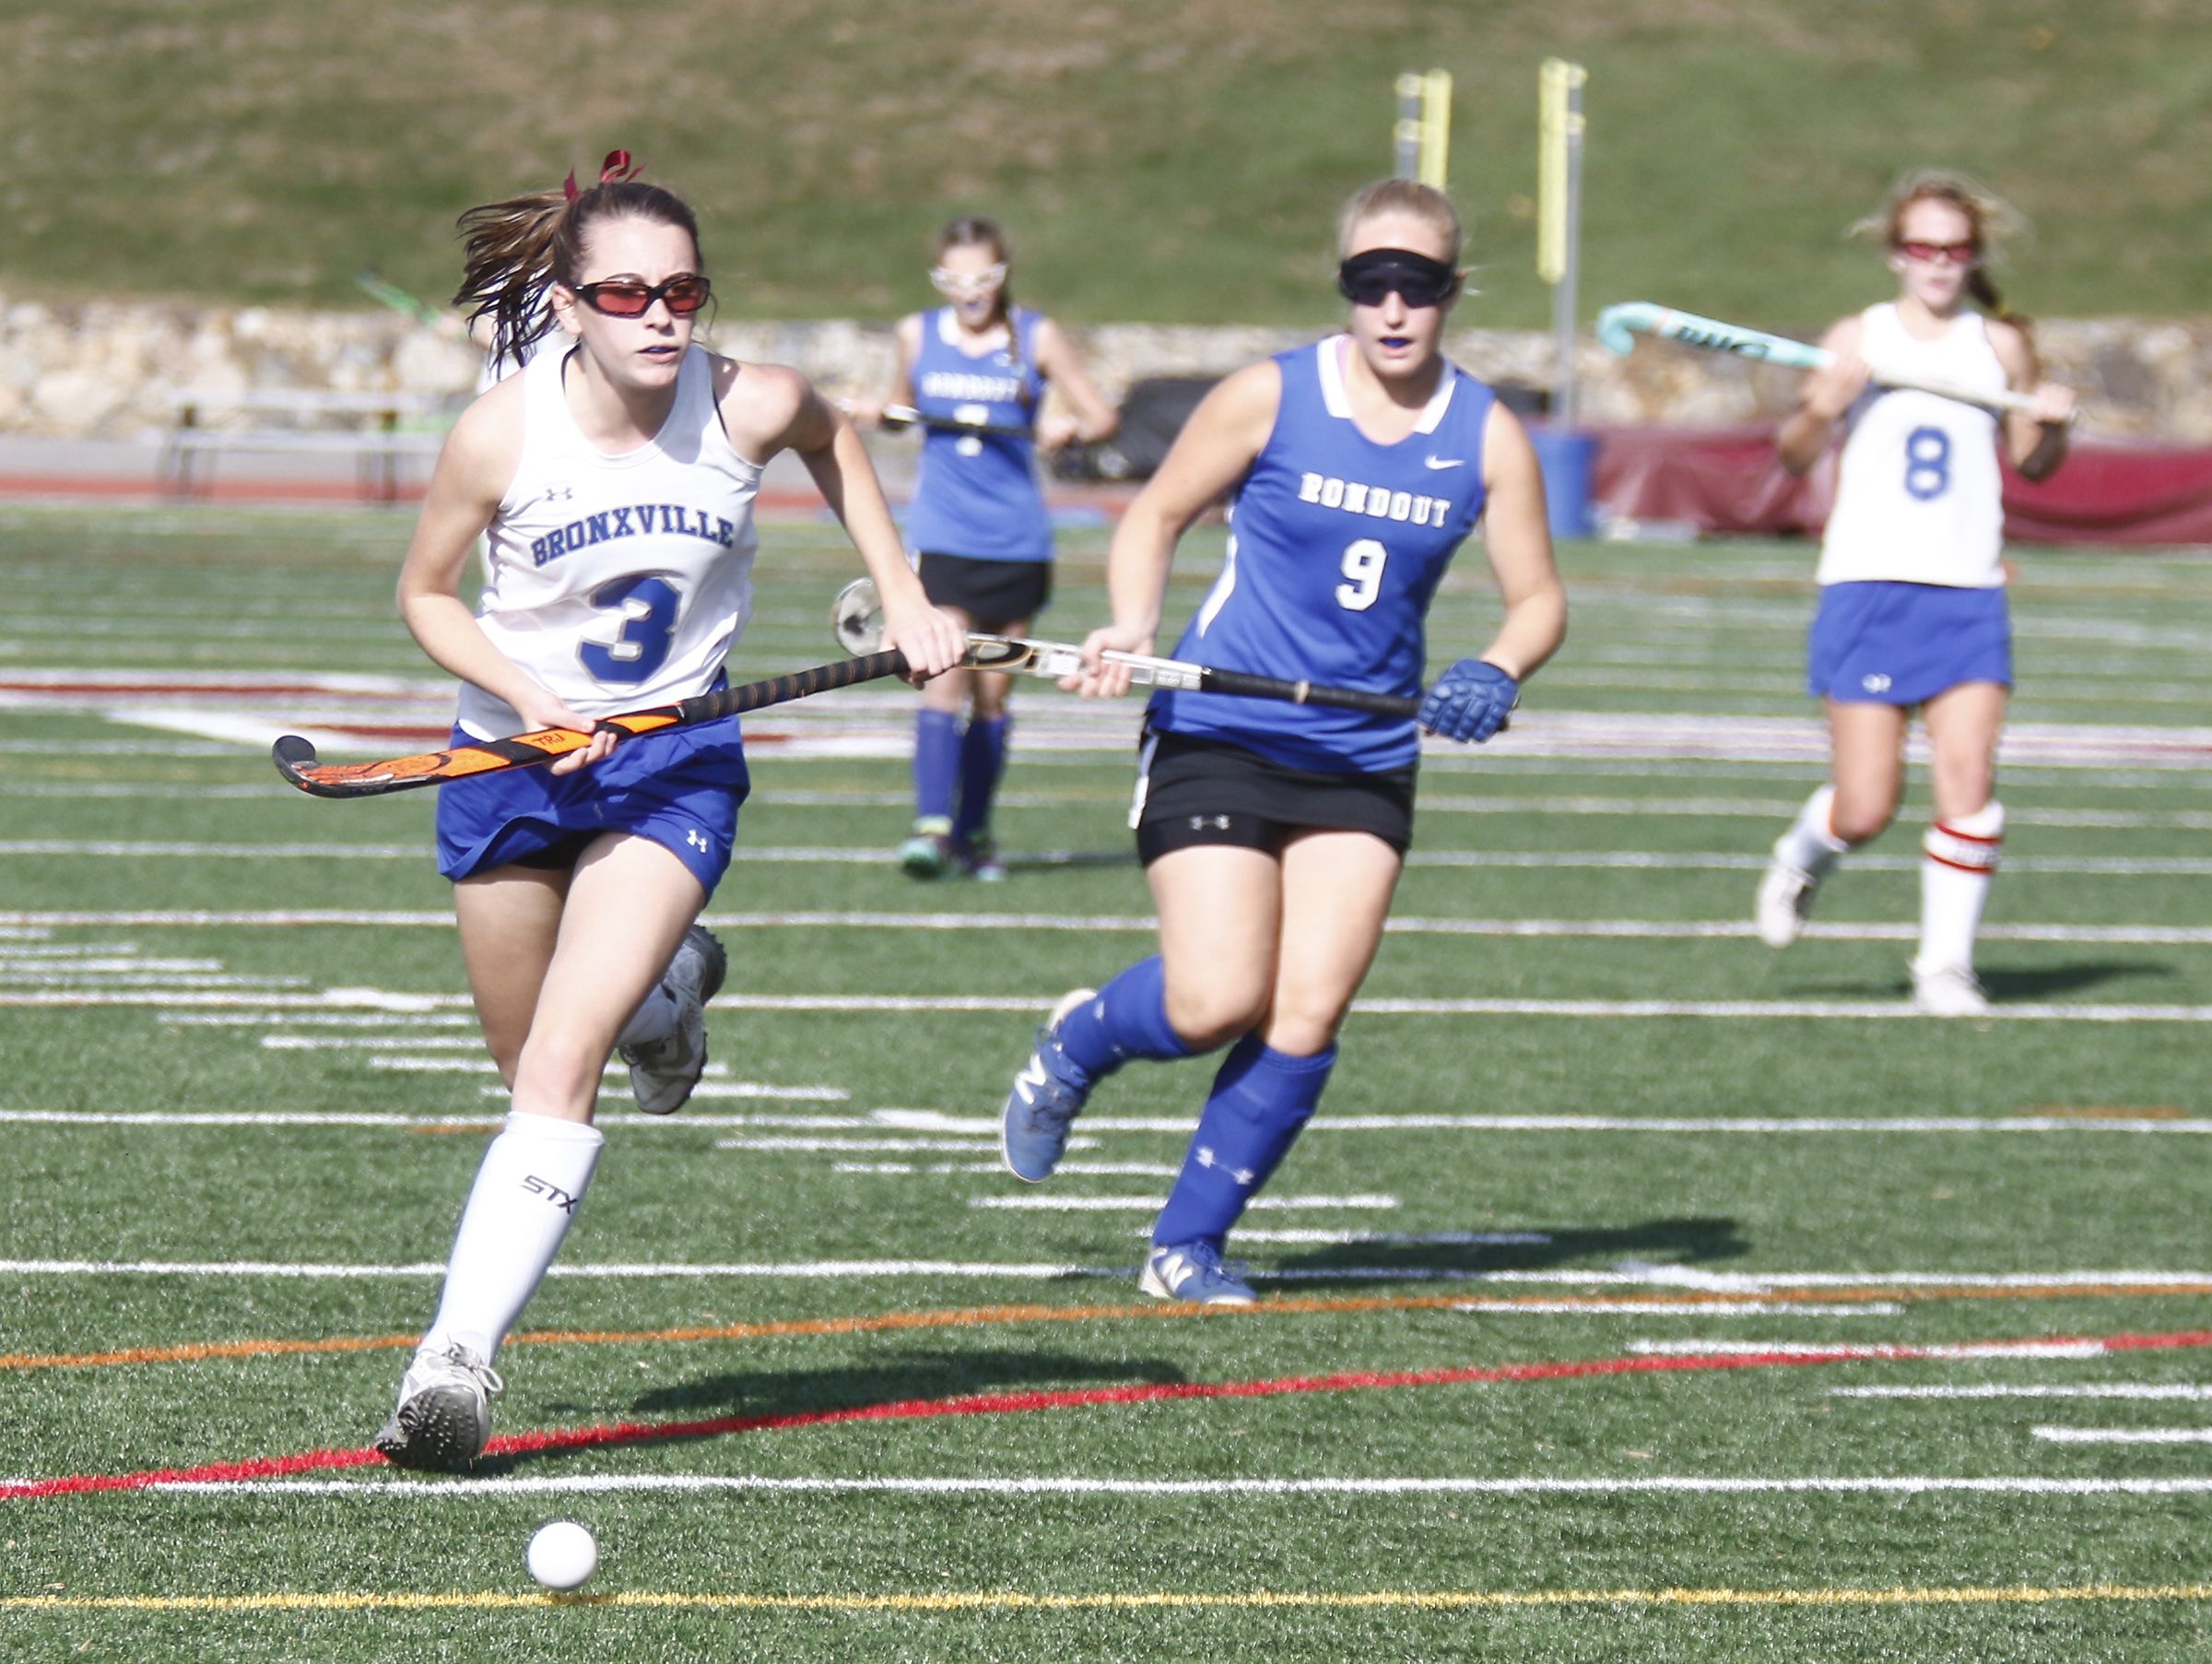 Bronxville's Mia Bettino (3) works past Roundout Valley's Makaylah Mutz (9) in the Class C regional championship field hockey game at Valhalla High School on Saturday, November 5, 2016.